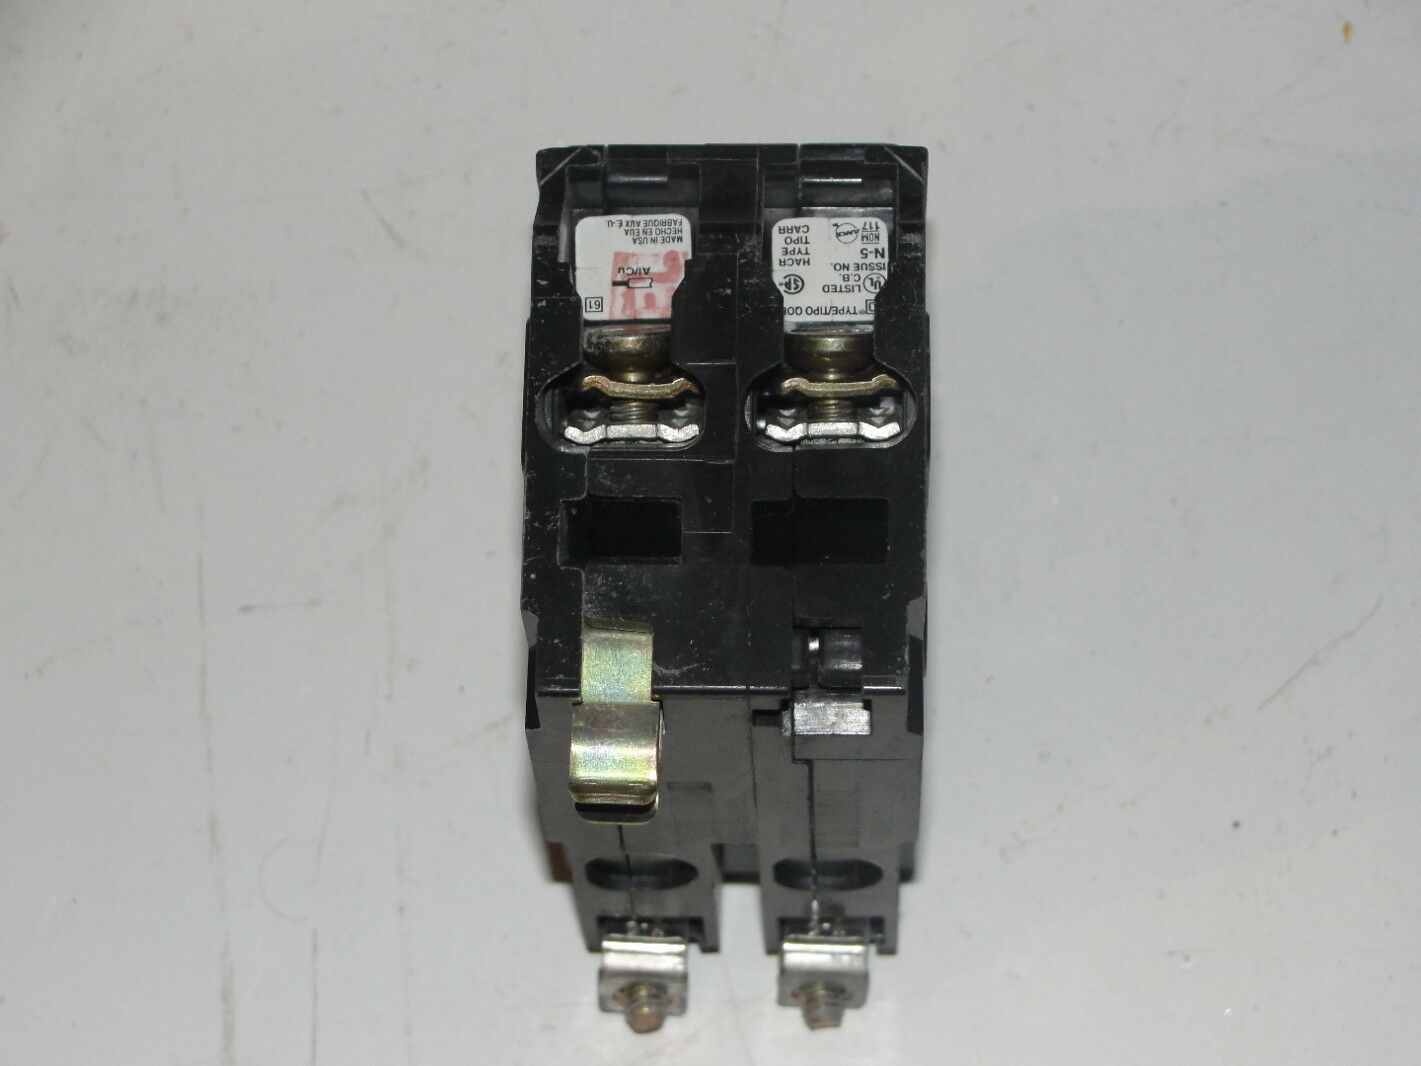 Square D Qo Tandem Circuit Breaker 20 Amp Search For Wiring Diagrams I Line Breakers Data Fuse Screw Library Type